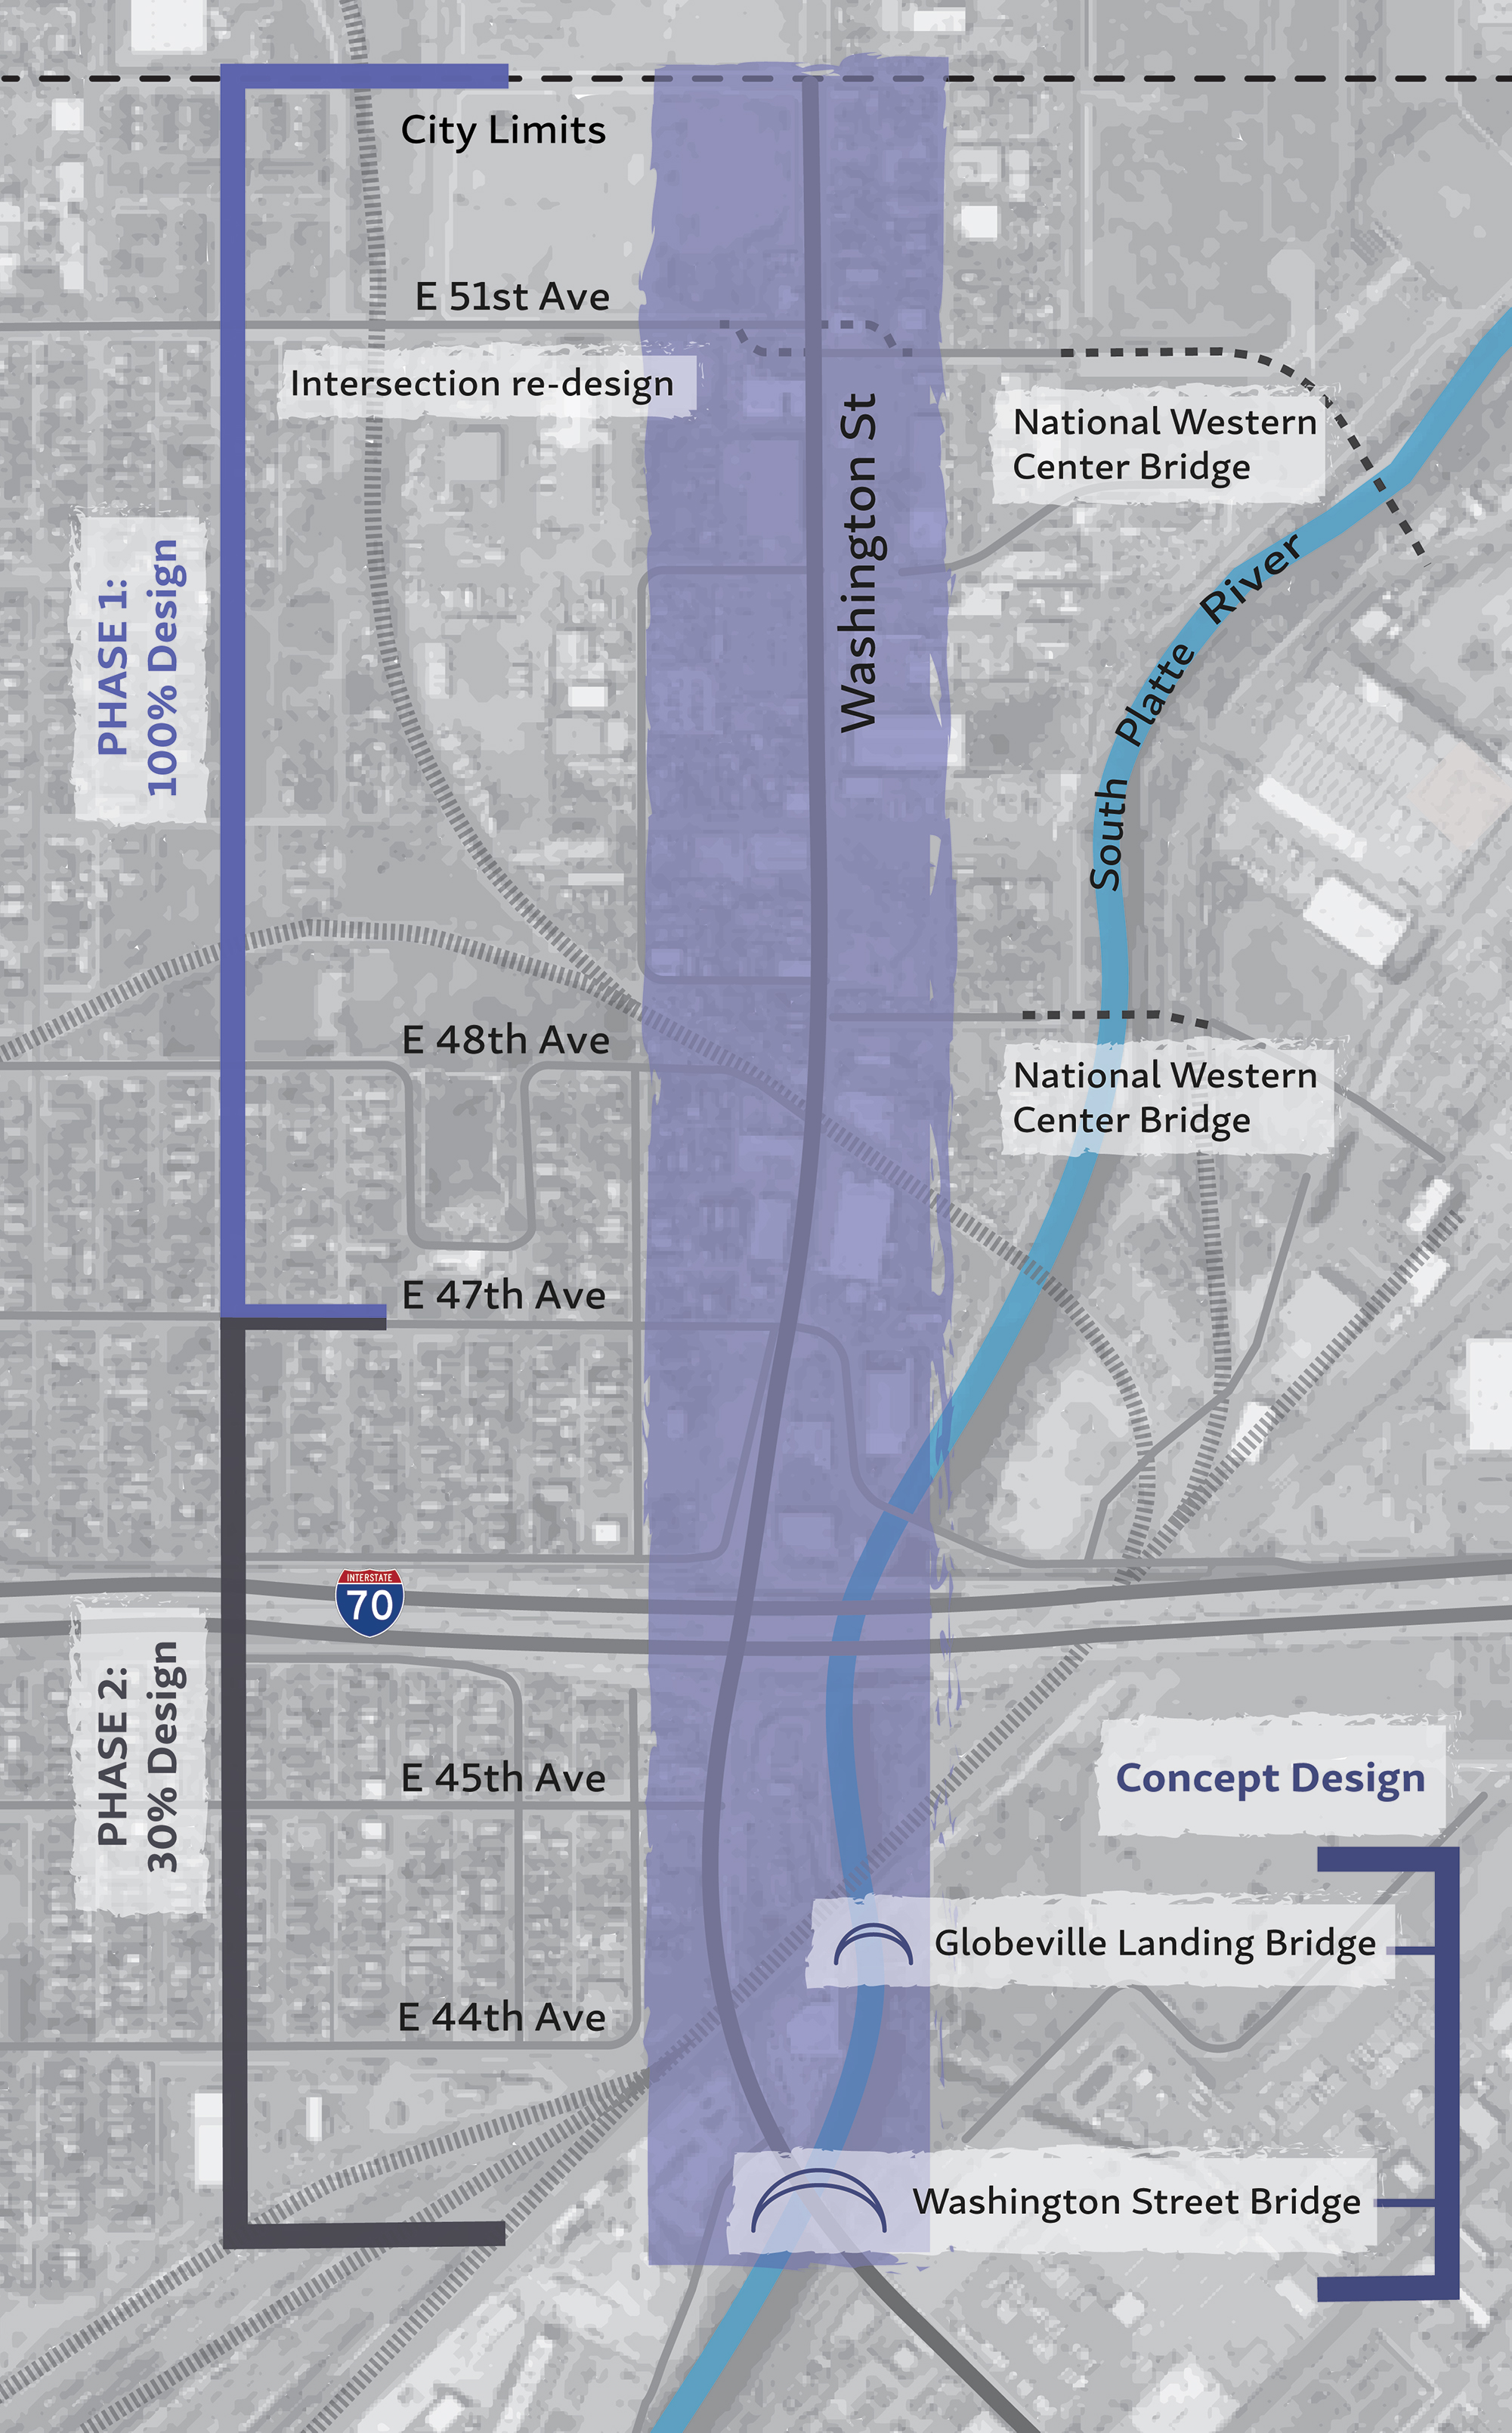 map of Washington Street corridor showing design phase areas and connecting projects